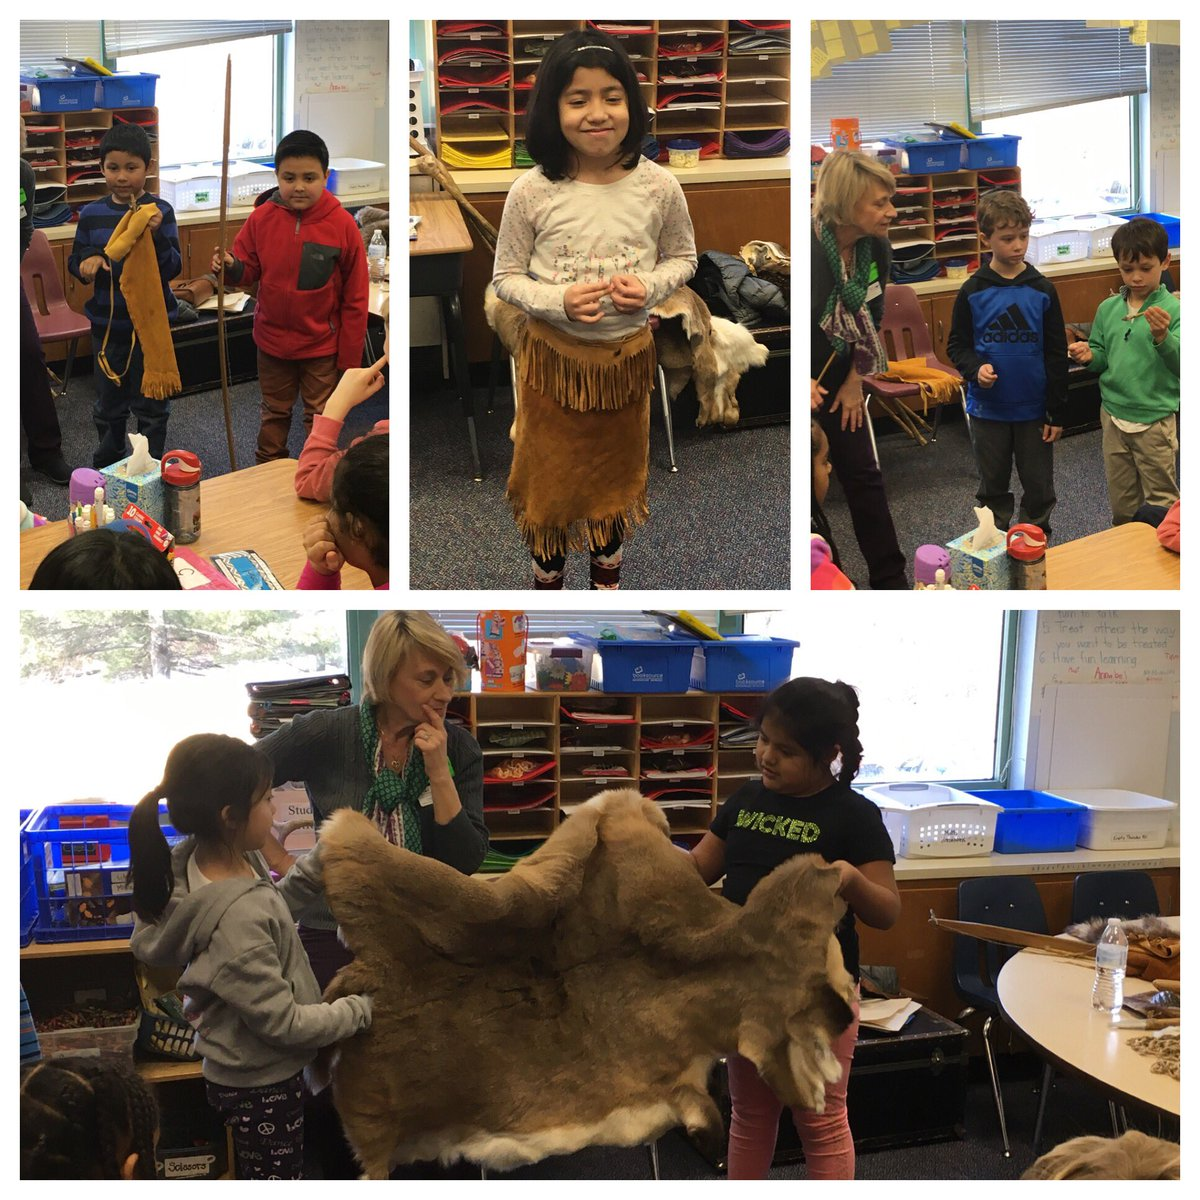 we-learned-all-about-the-powhatans-from-our-friend-from-the-jamestown-yorktown-foundation-today-https-t-co-ejios8miyk